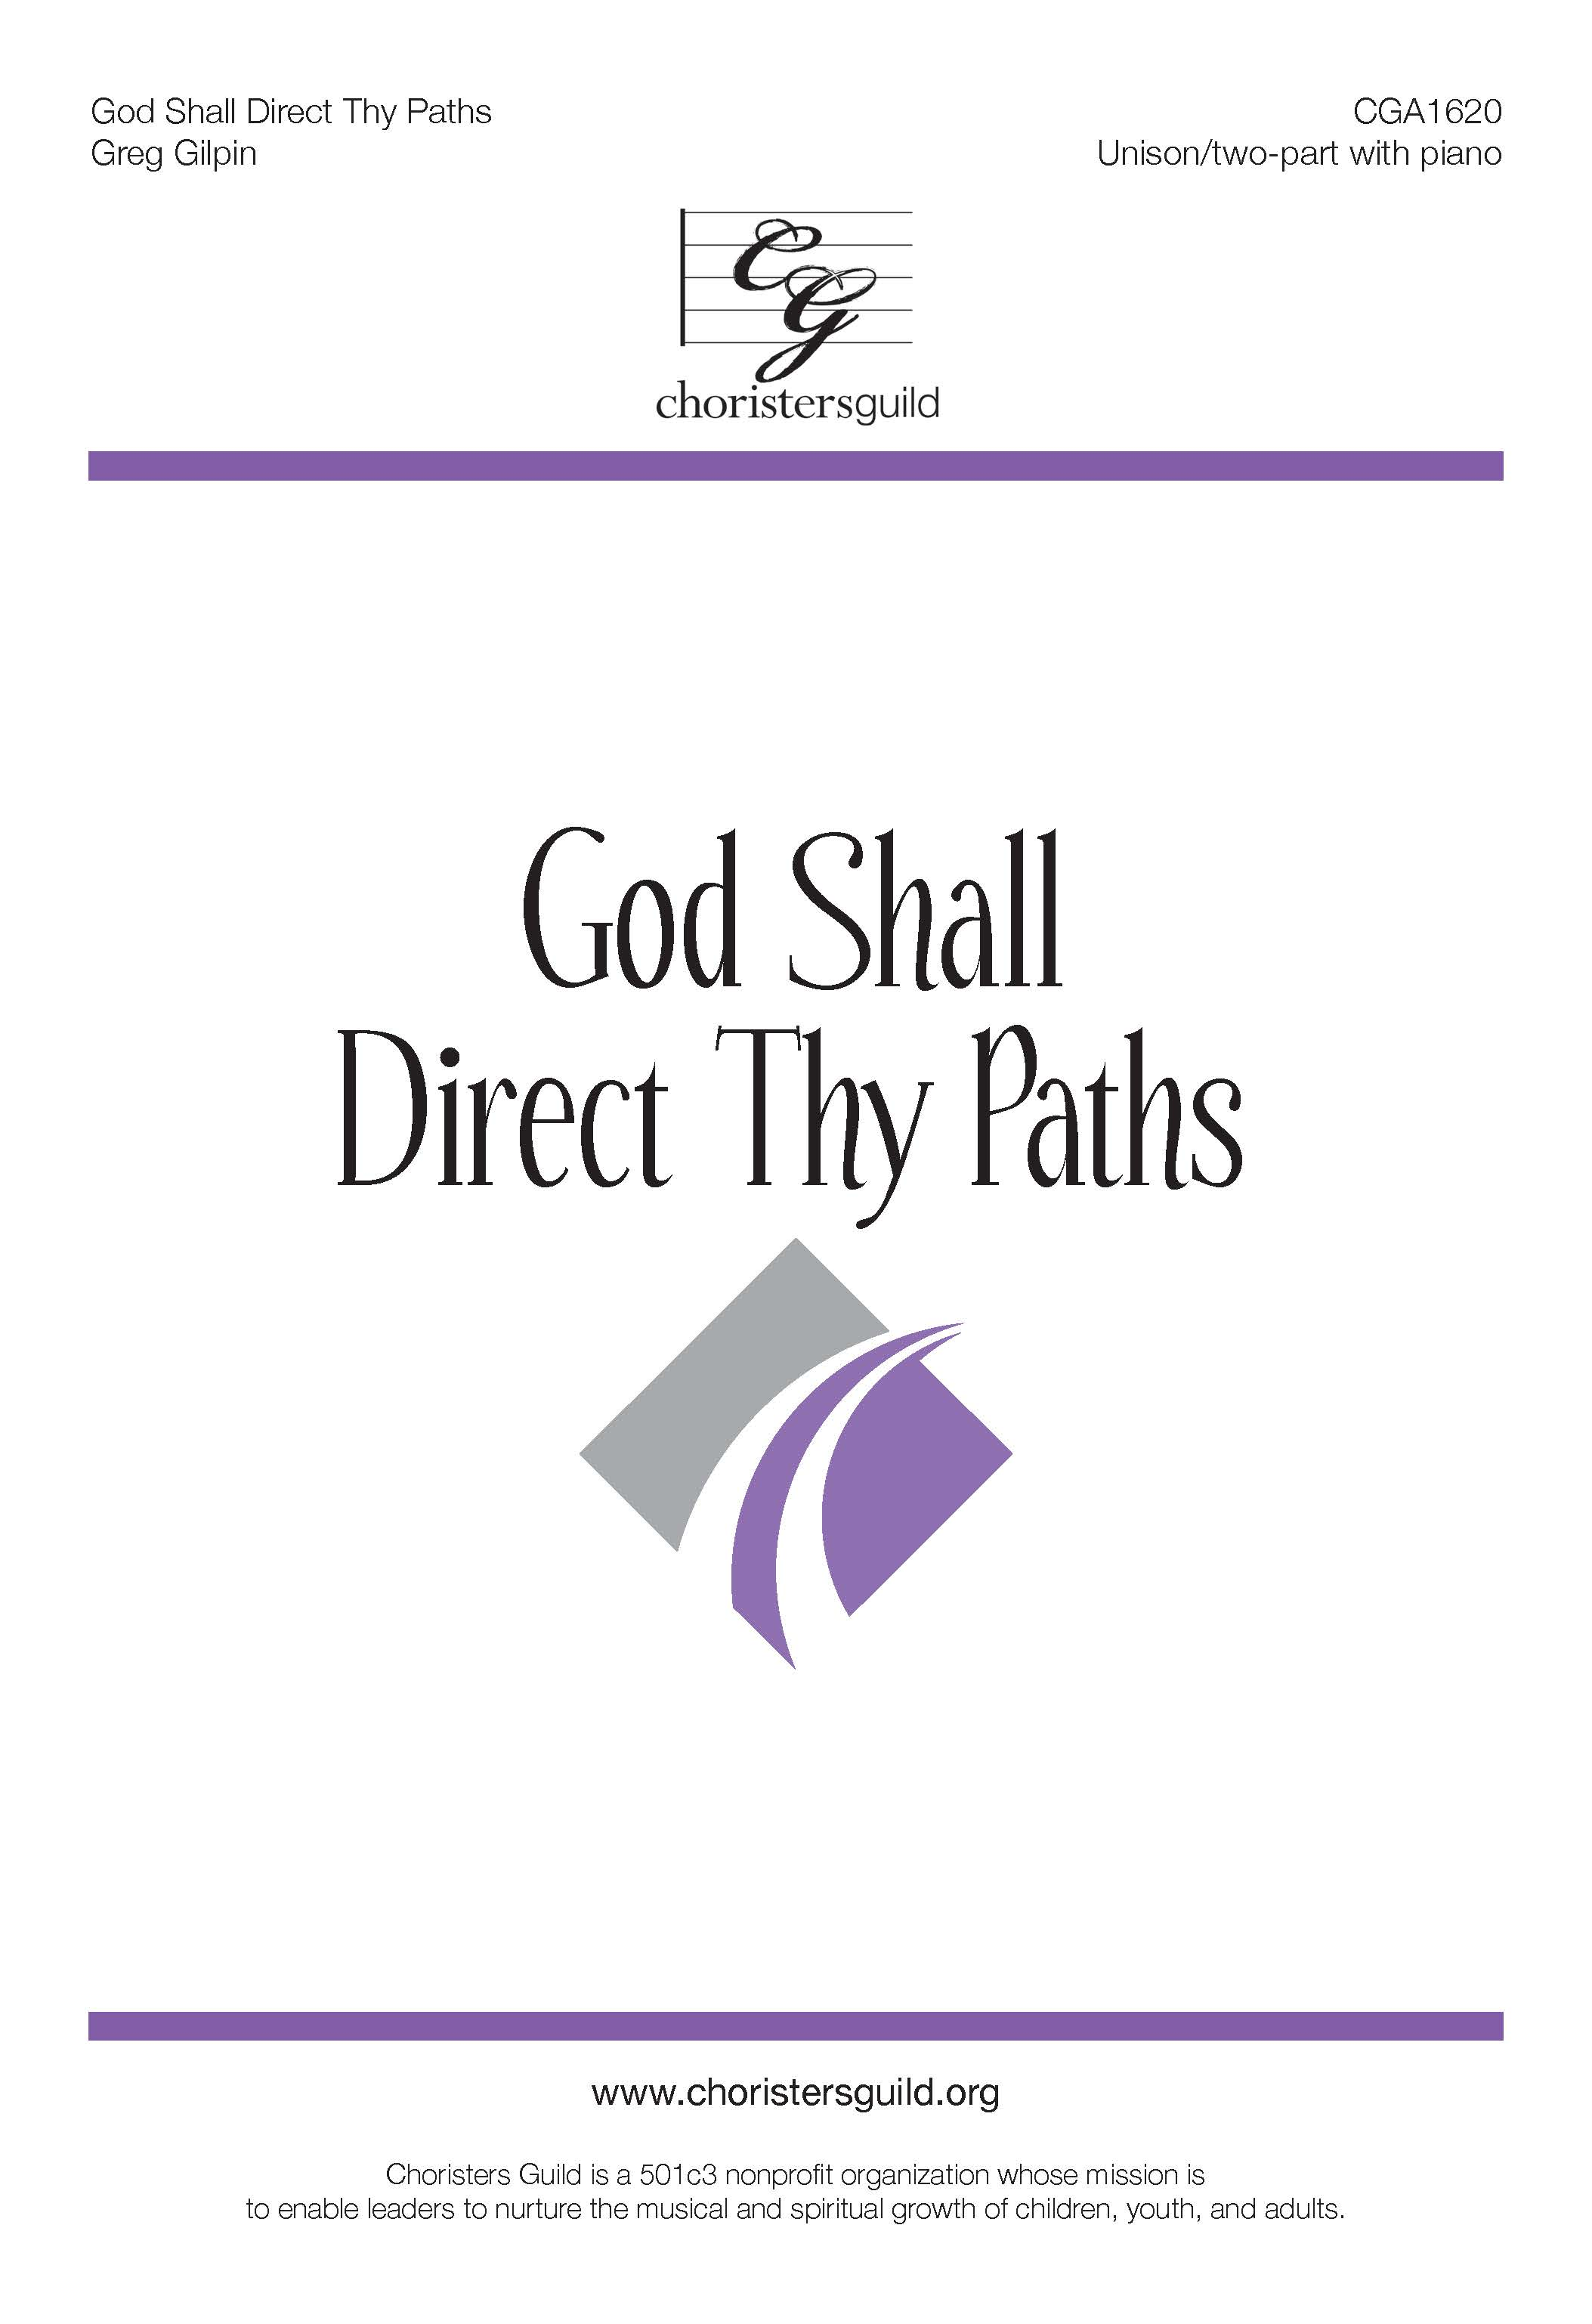 God Shall Direct Thy Paths - Unison/Two-part